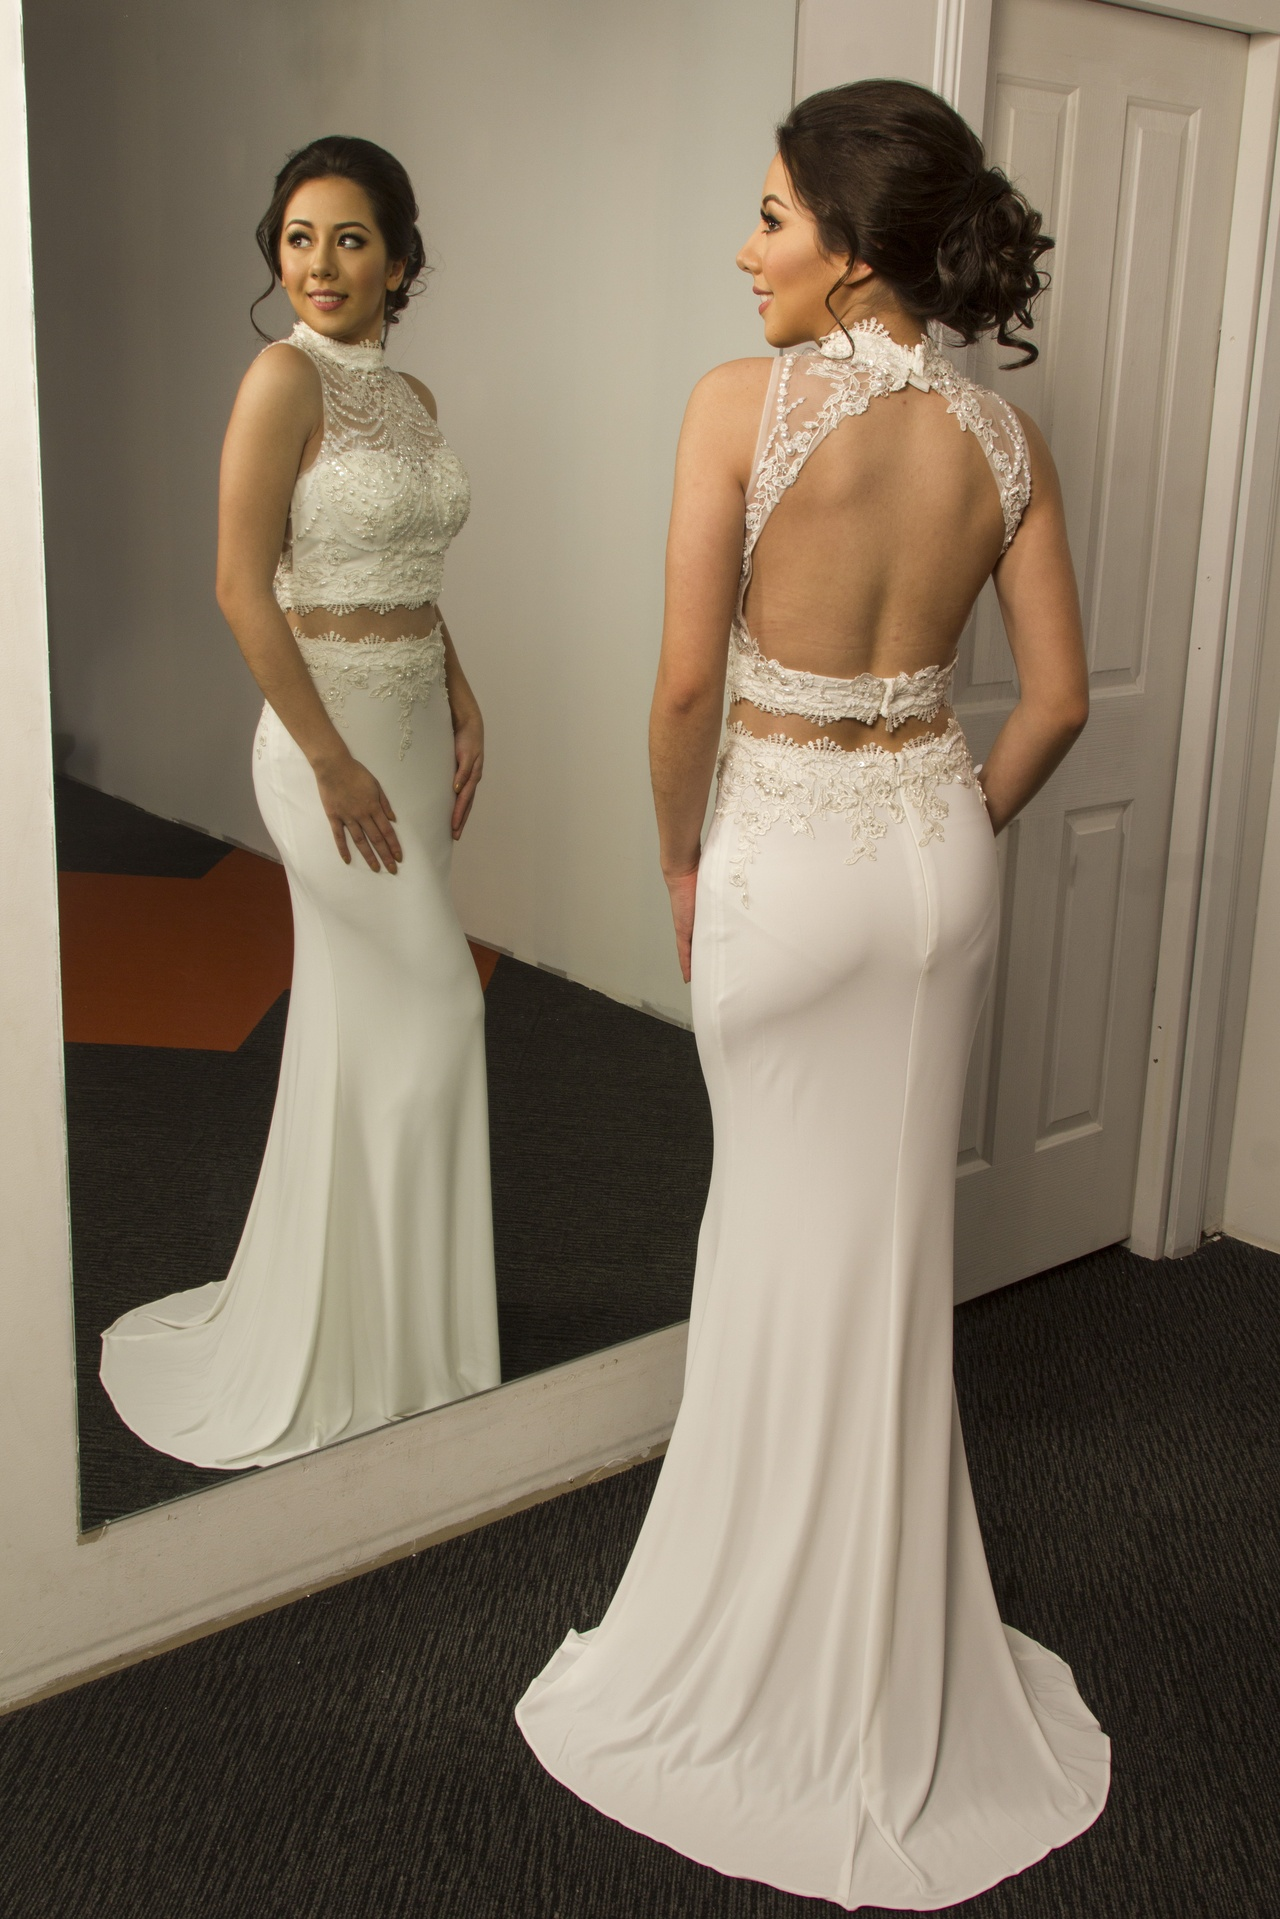 Frocks and Gowns Australia - Dressed by Frocks and Gowns